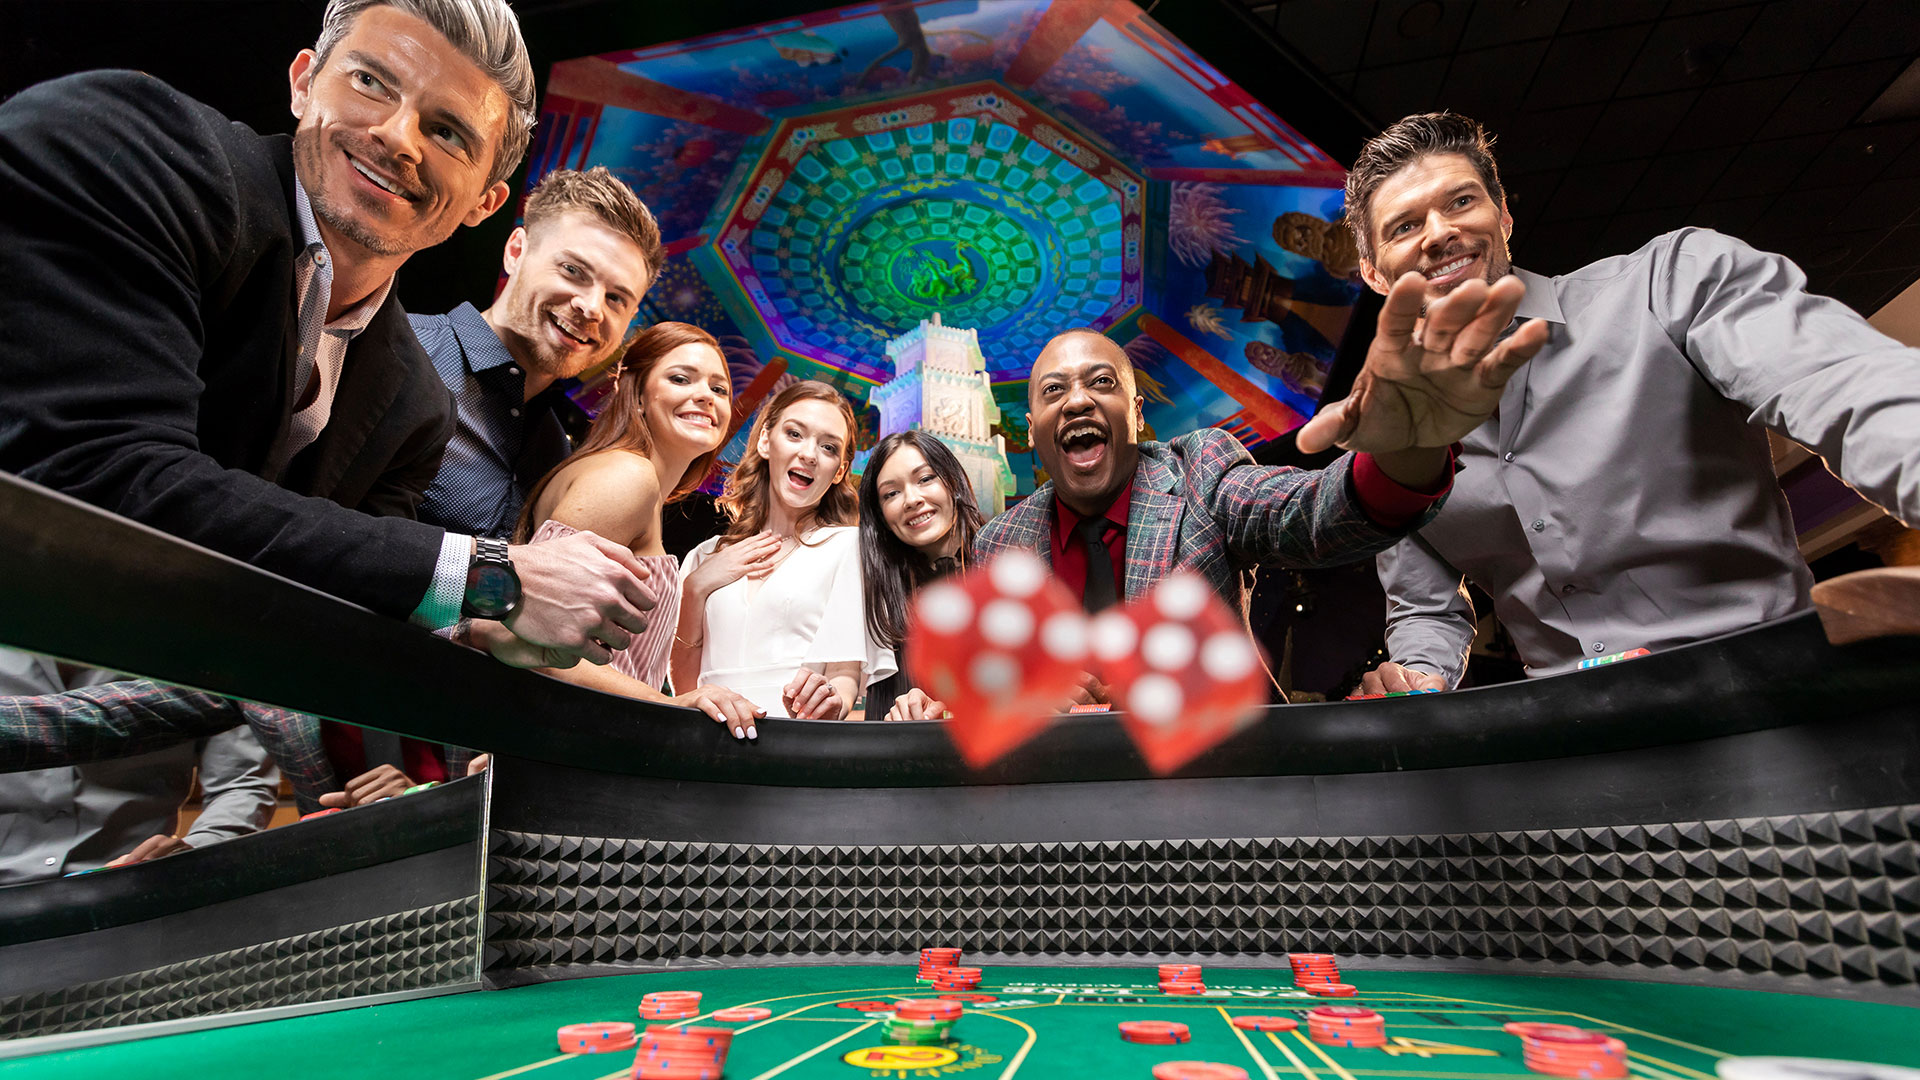 Know the rules of Baccarat (บาคาร่า) and get ready to play.